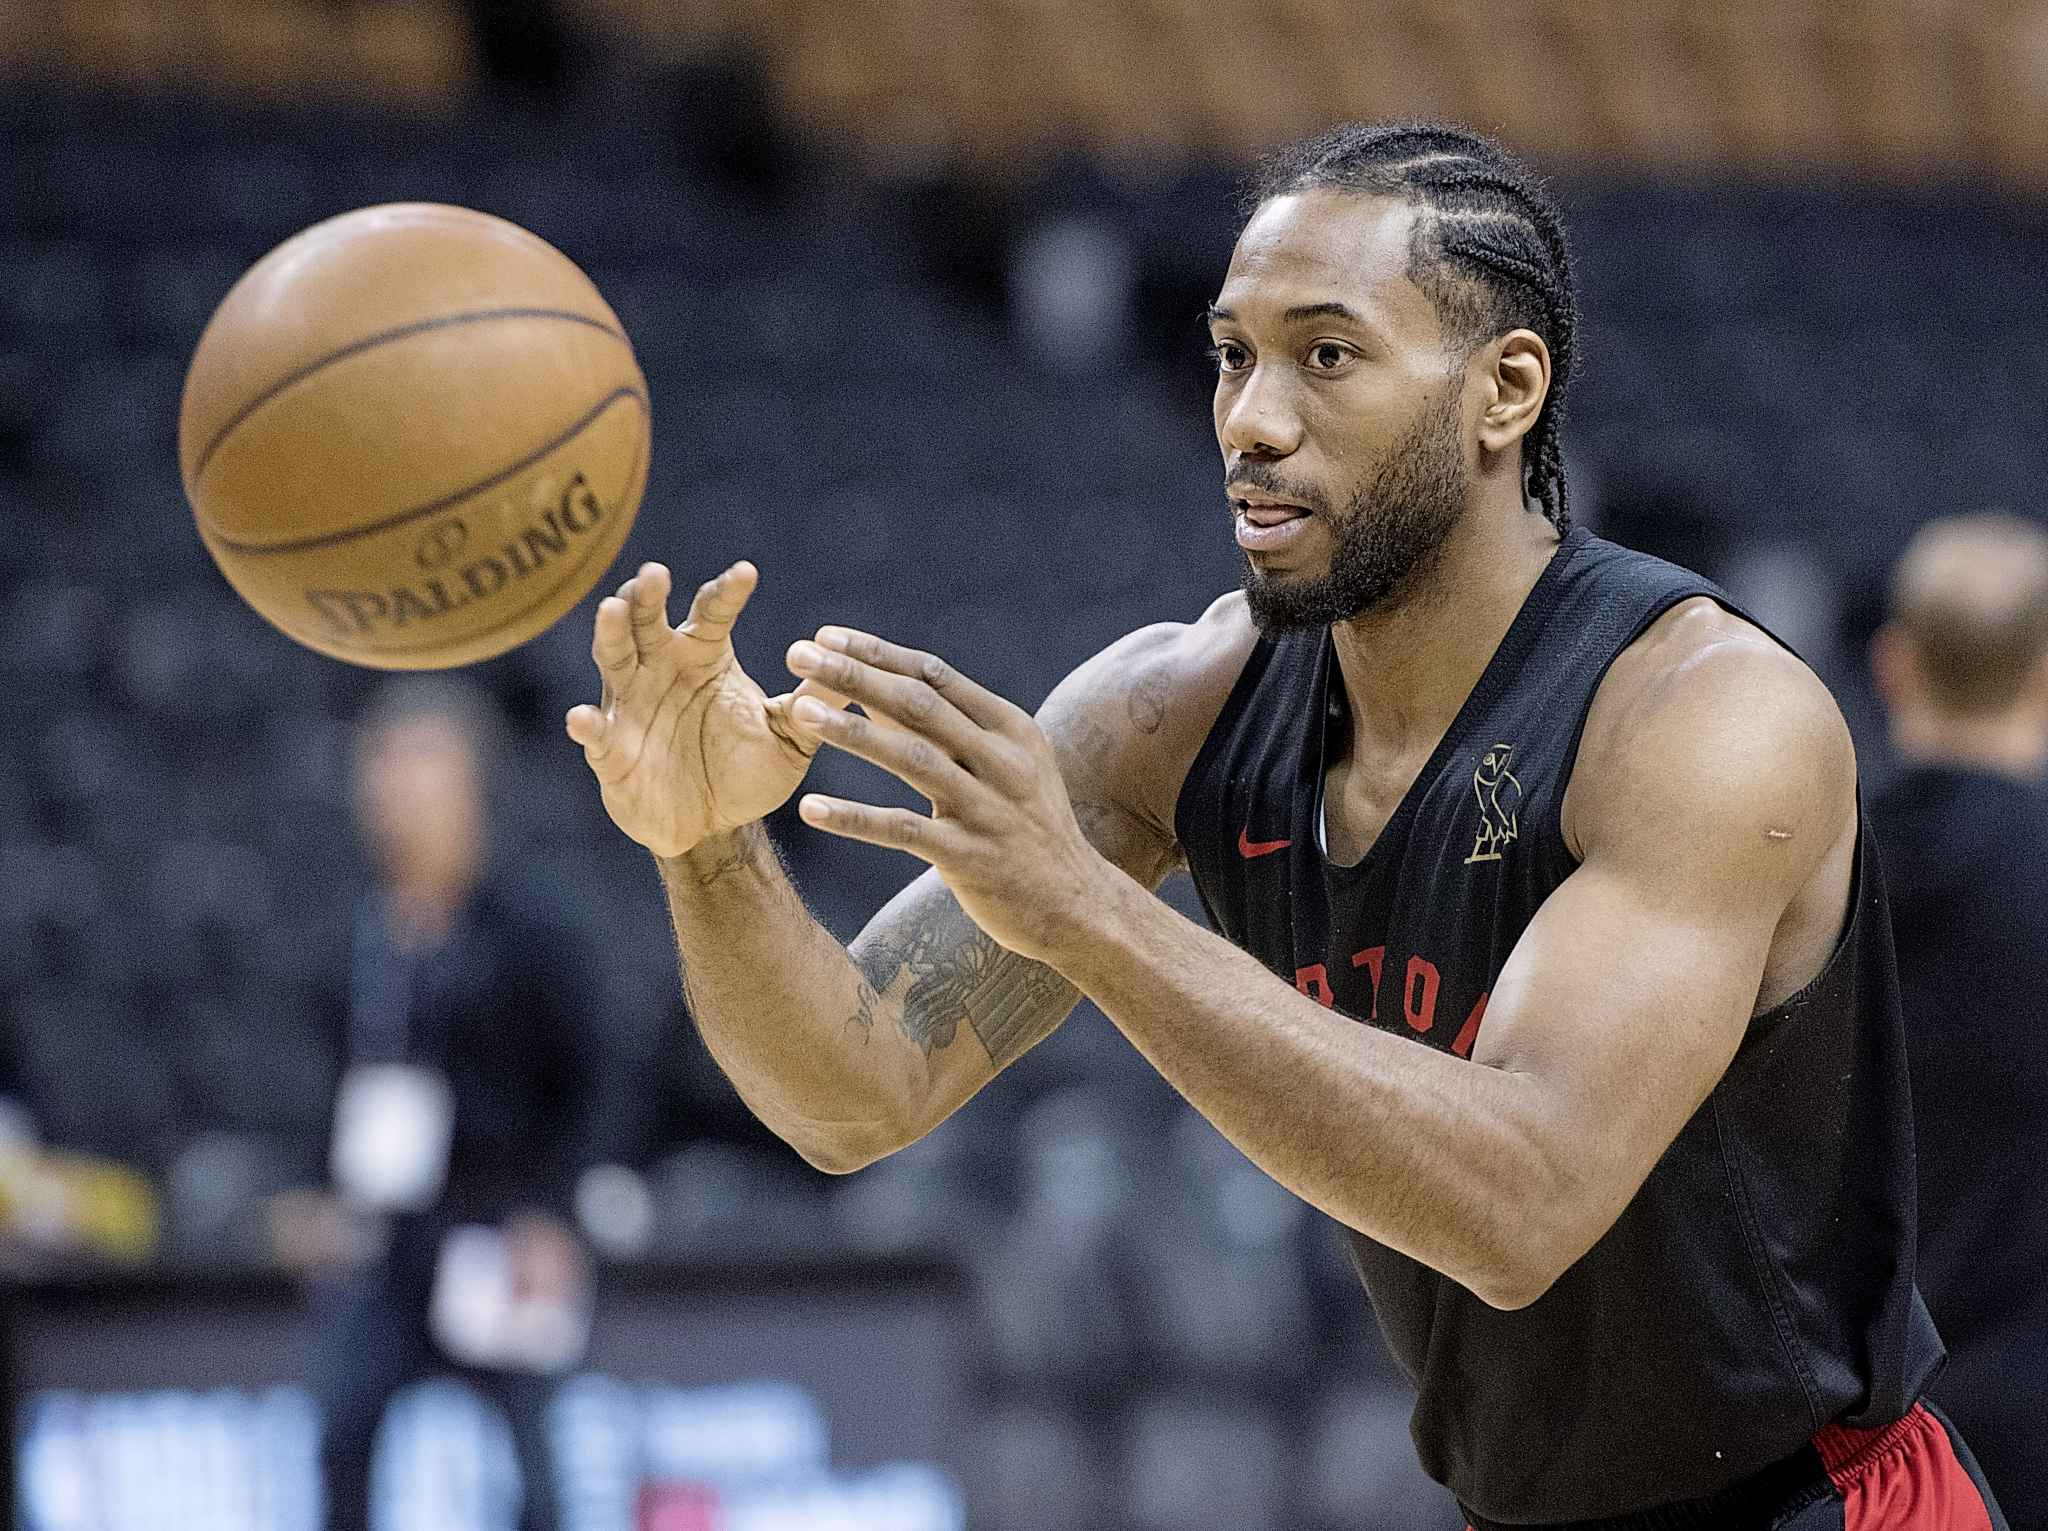 Toronto Raptors' Kawhi Leonard launches a pass during practice for the NBA Finals in Toronto on Wednesday.